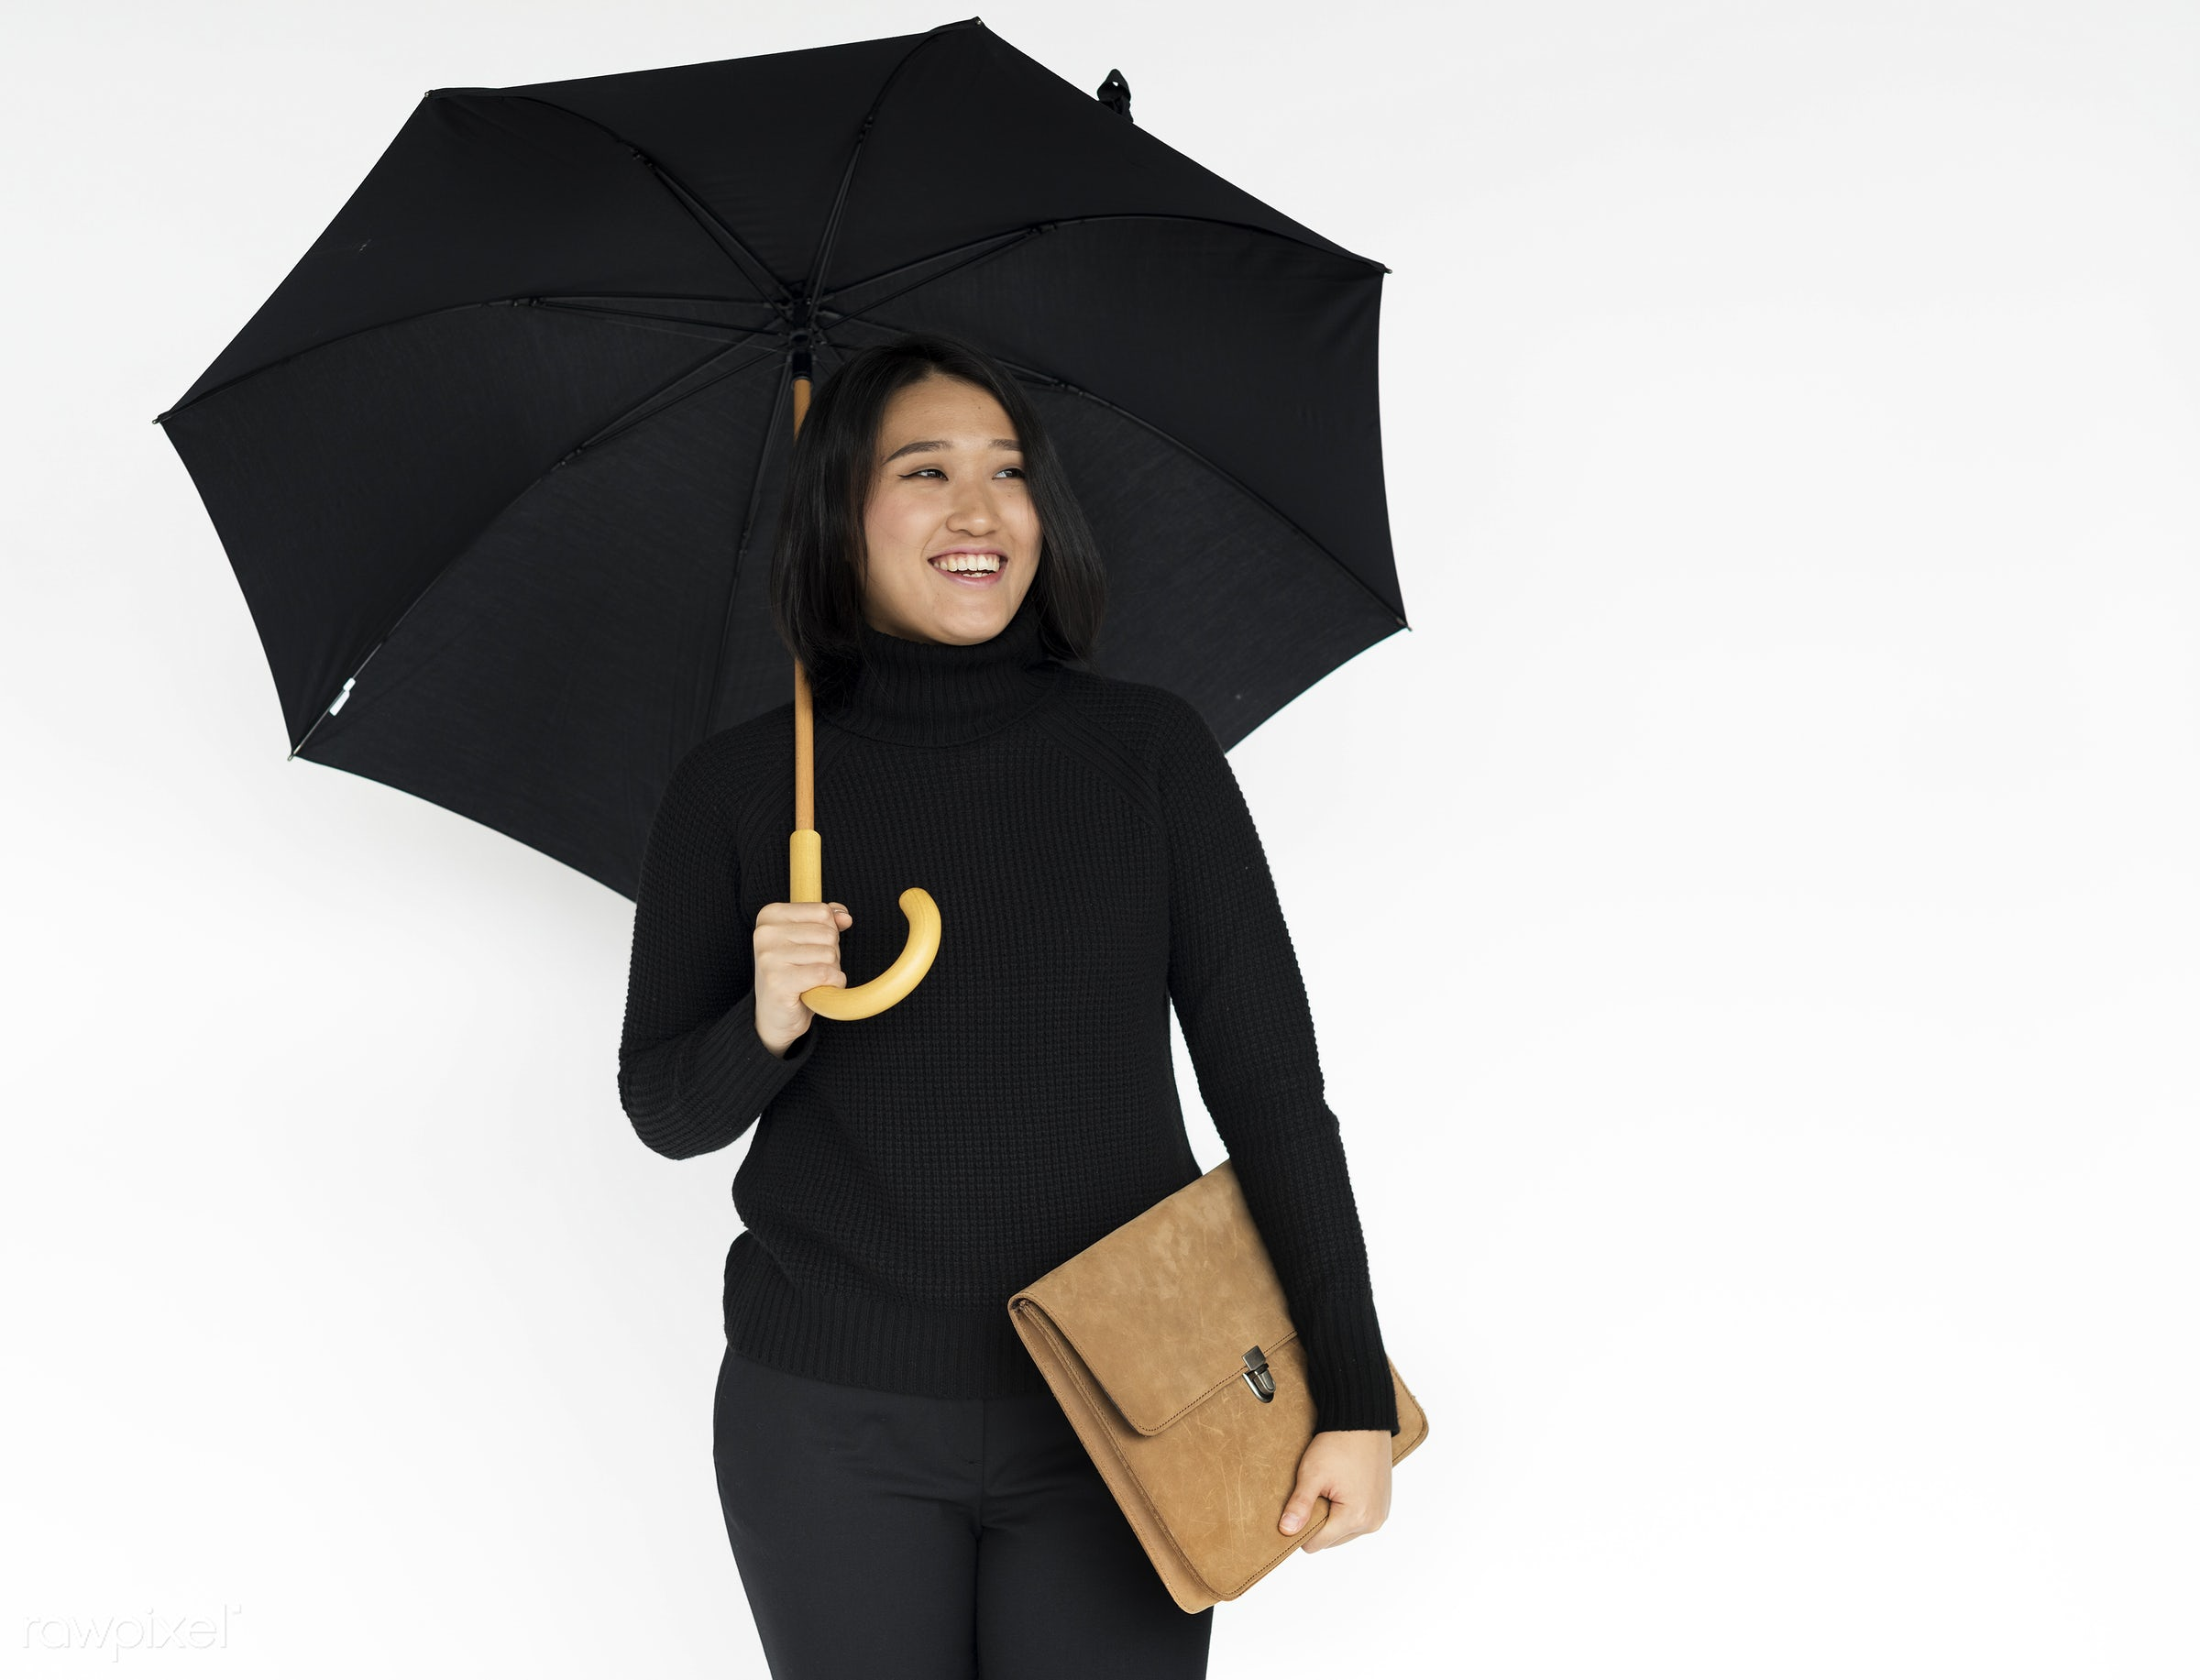 studio, expression, person, holding, people, woman, weather, positive, smile, cheerful, black, smiling, isolated, bag,...